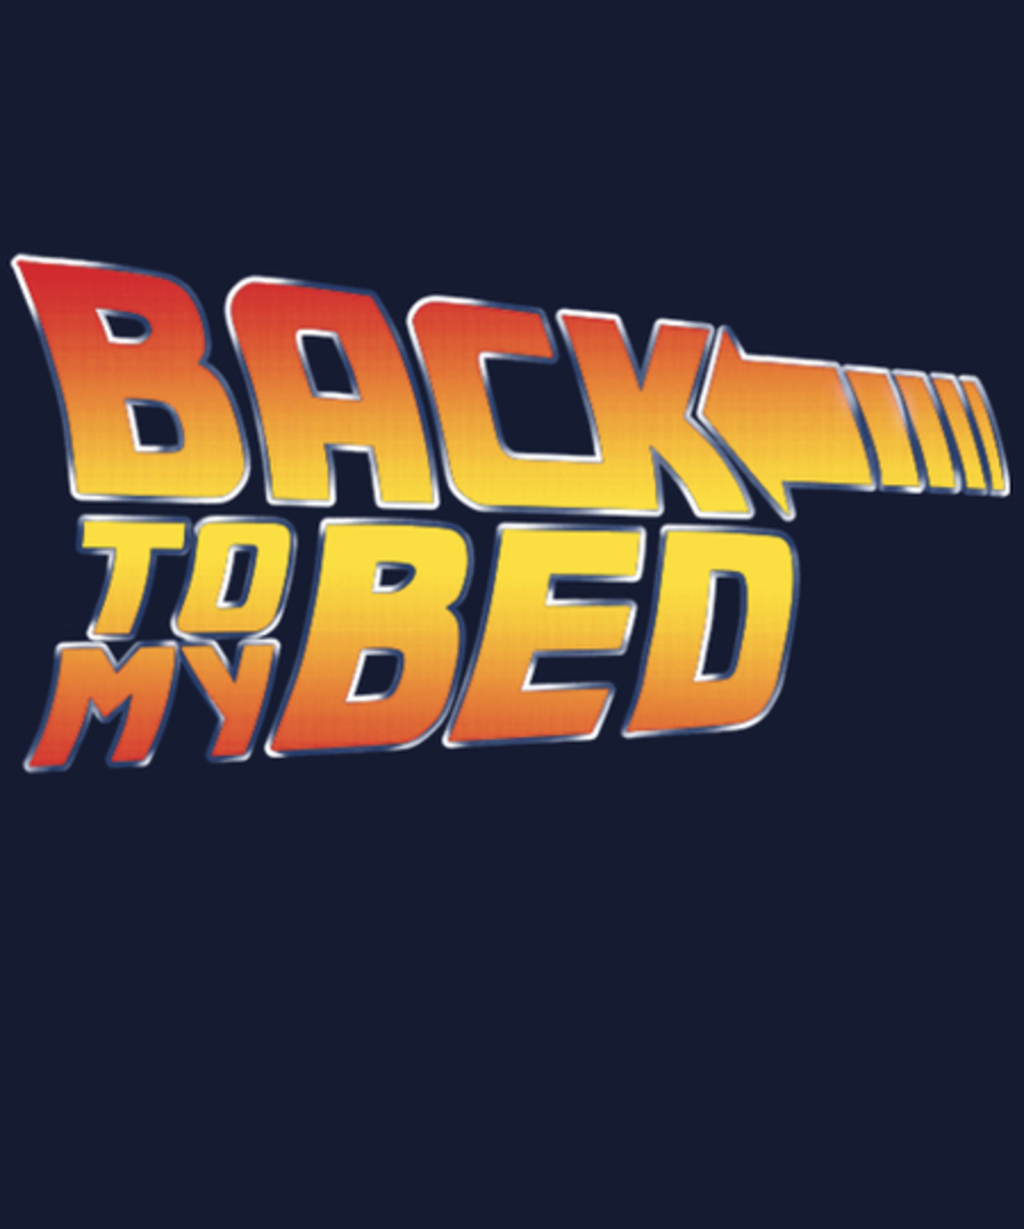 Qwertee: Back to bed